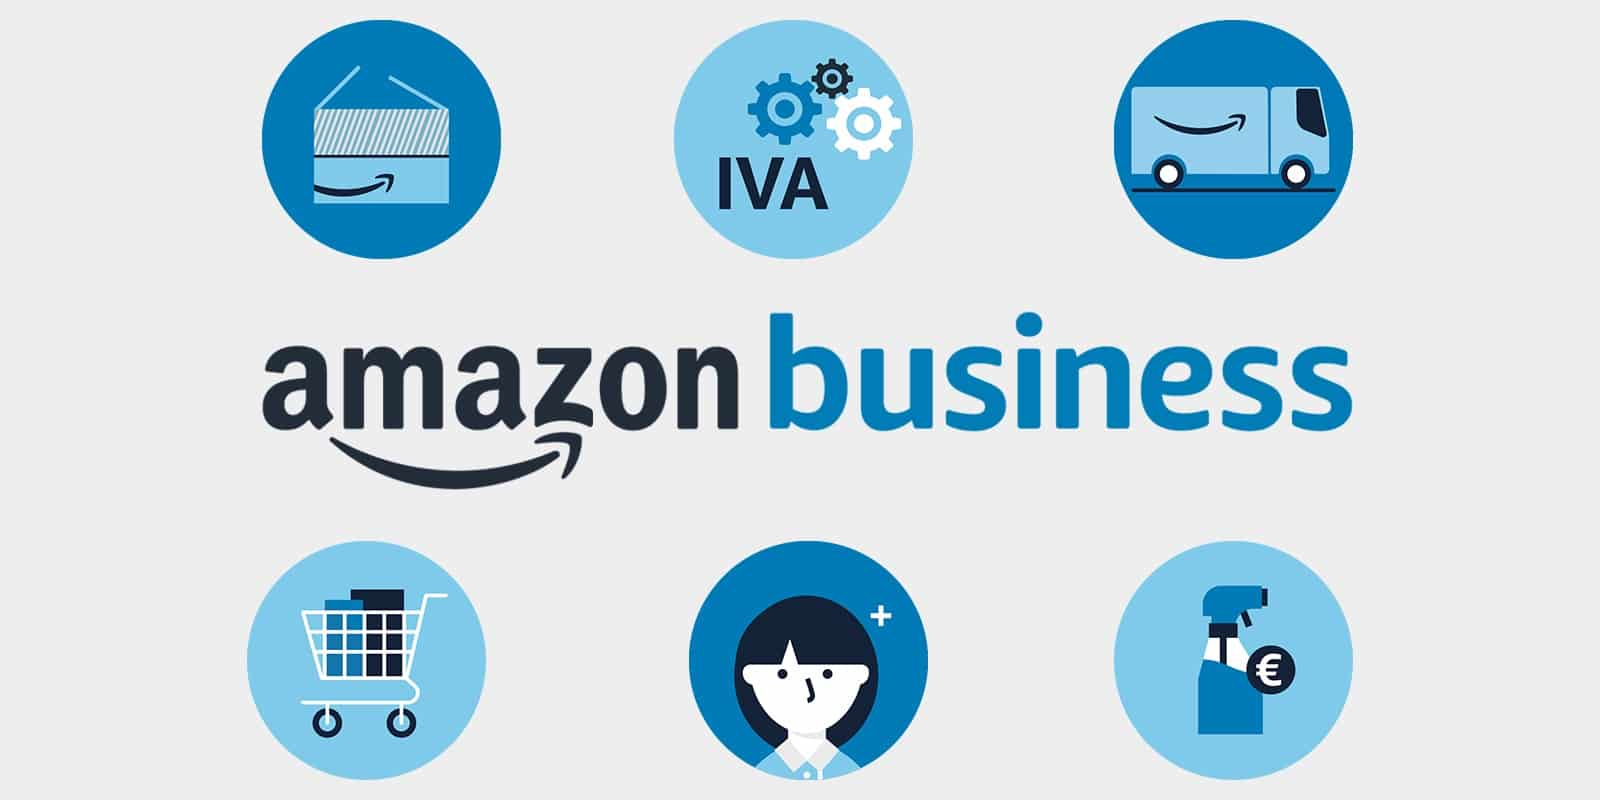 Amazon Business per aziende e partita iva. Come registrarsi. Opinioni